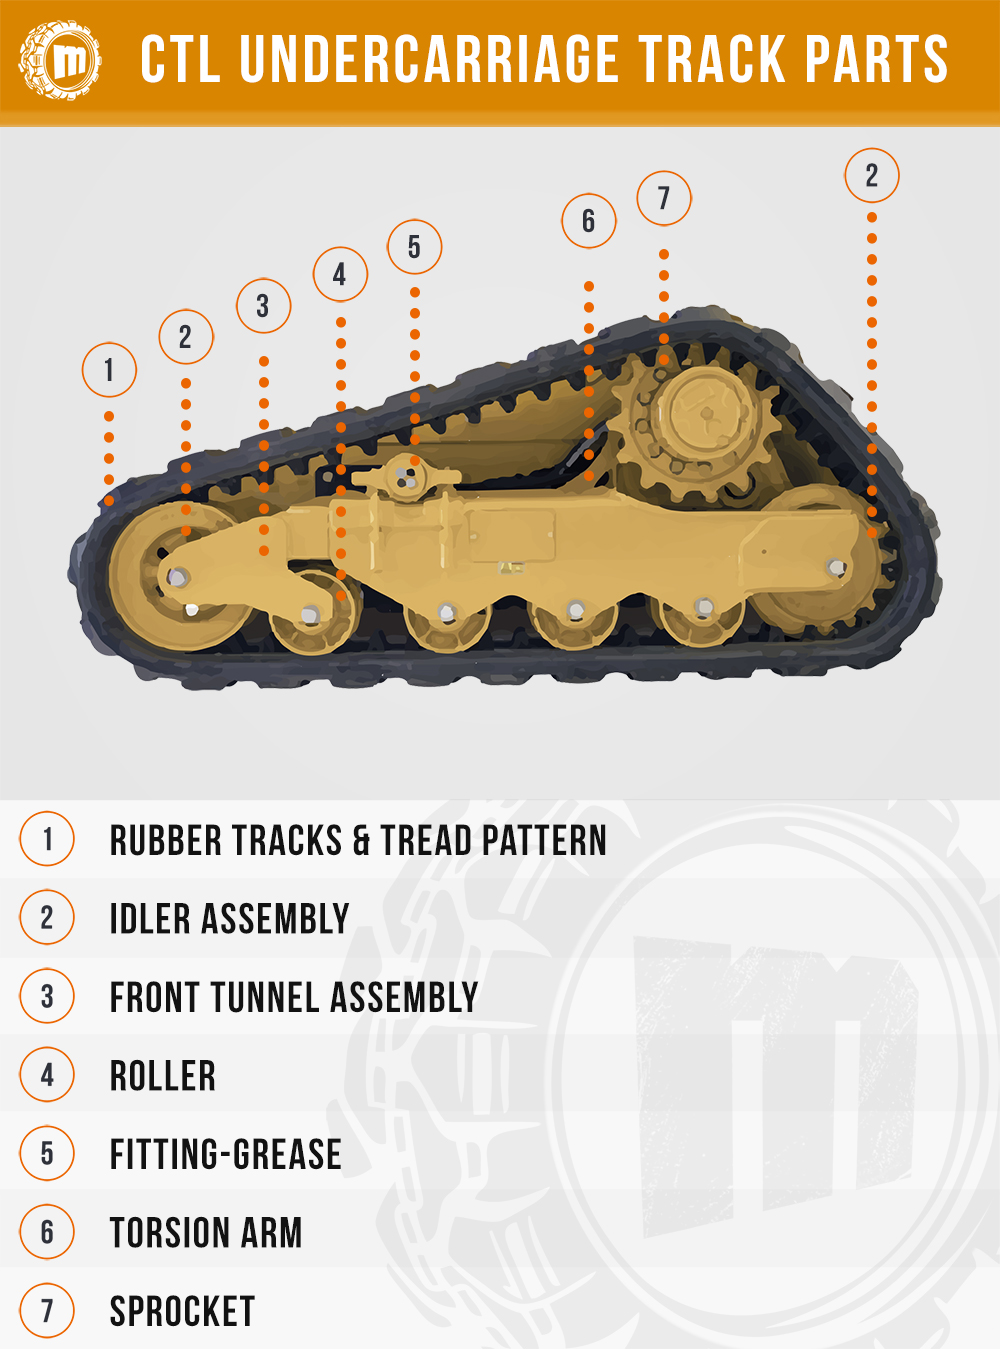 Skid Steer Tracks - Undercarriage Parts Guide